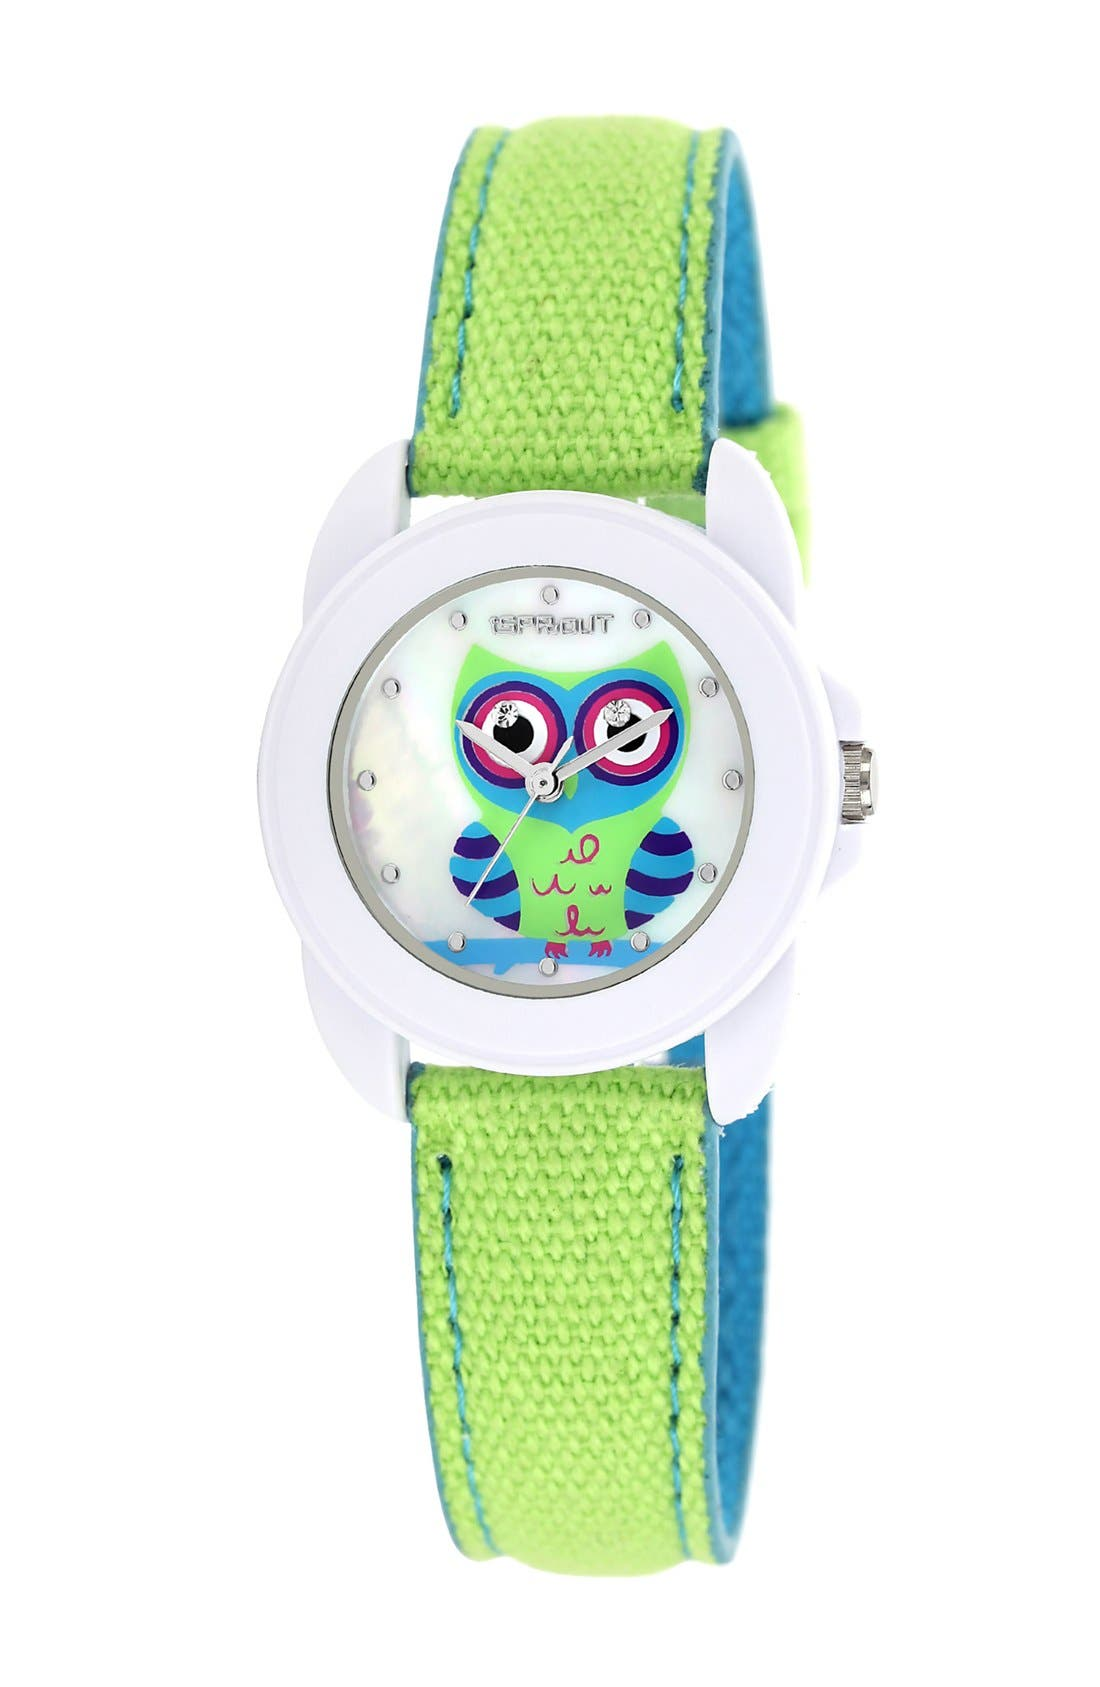 Main Image - SPROUT™ Watches Owl Dial Watch, 22mm